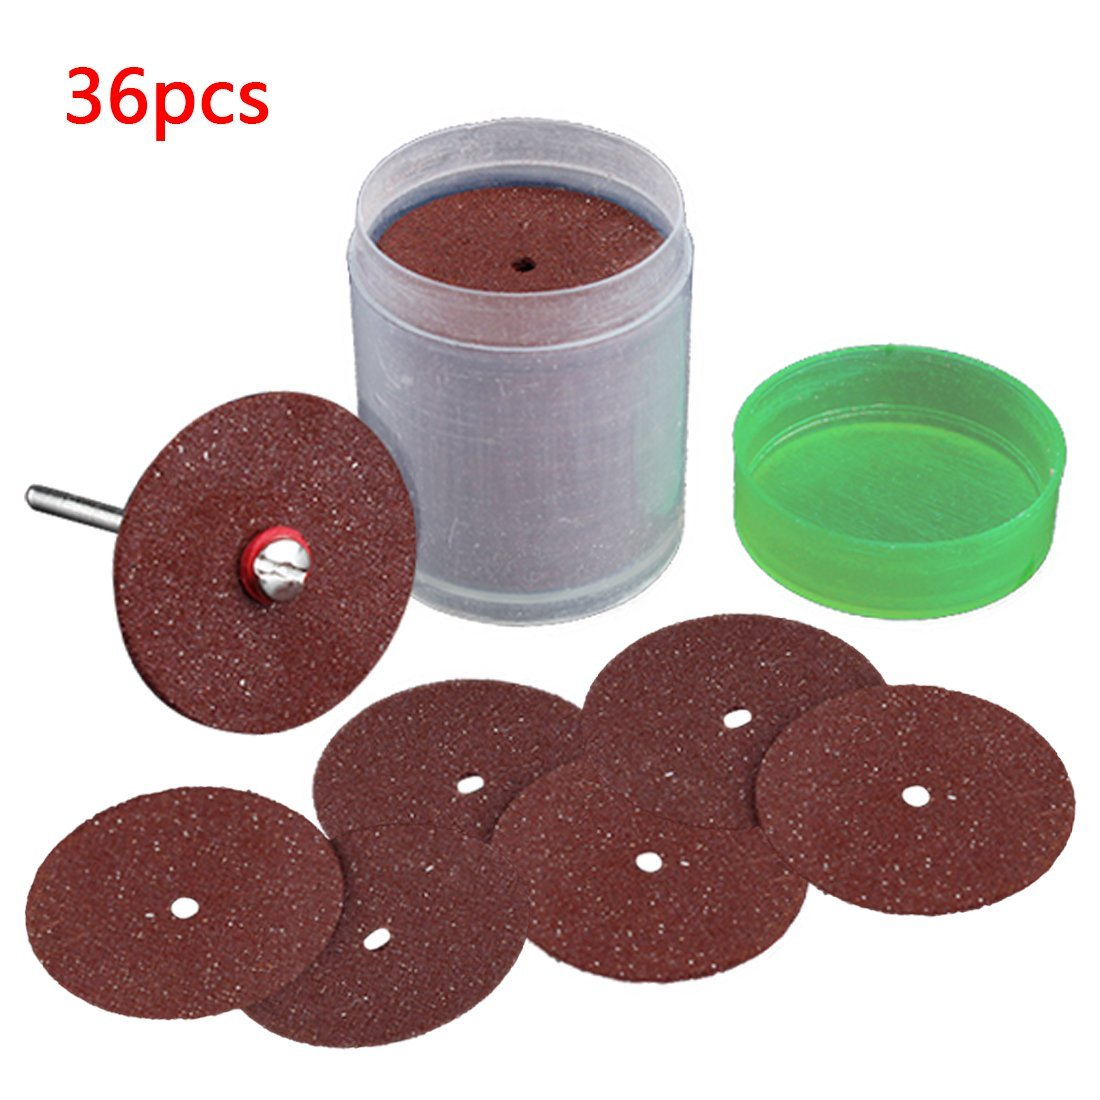 36Pcs Circular Saw Blade Grinding Wheel Cutting Disc For Rotary Tool Red